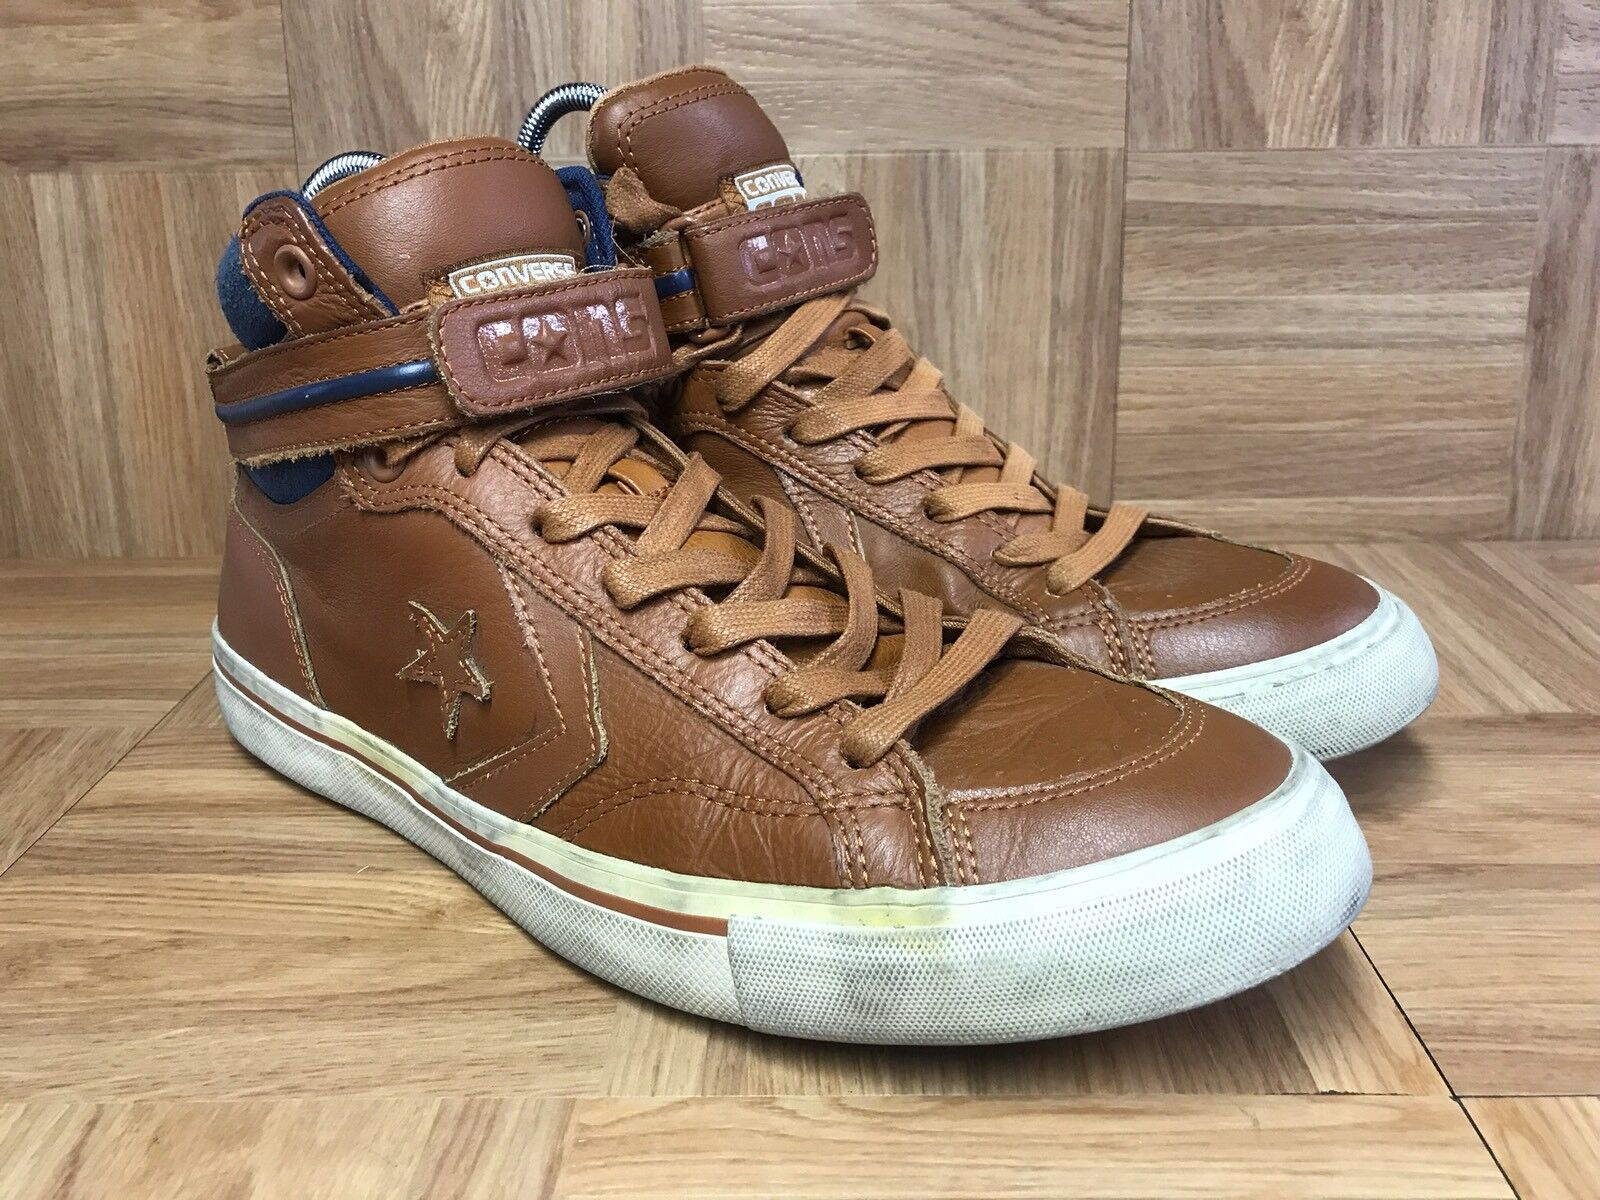 RARE� Converse Chuck Taylor All Star CONS Ankle 11 Strap Ginger Boots Sz 11 Ankle Men's 19db04